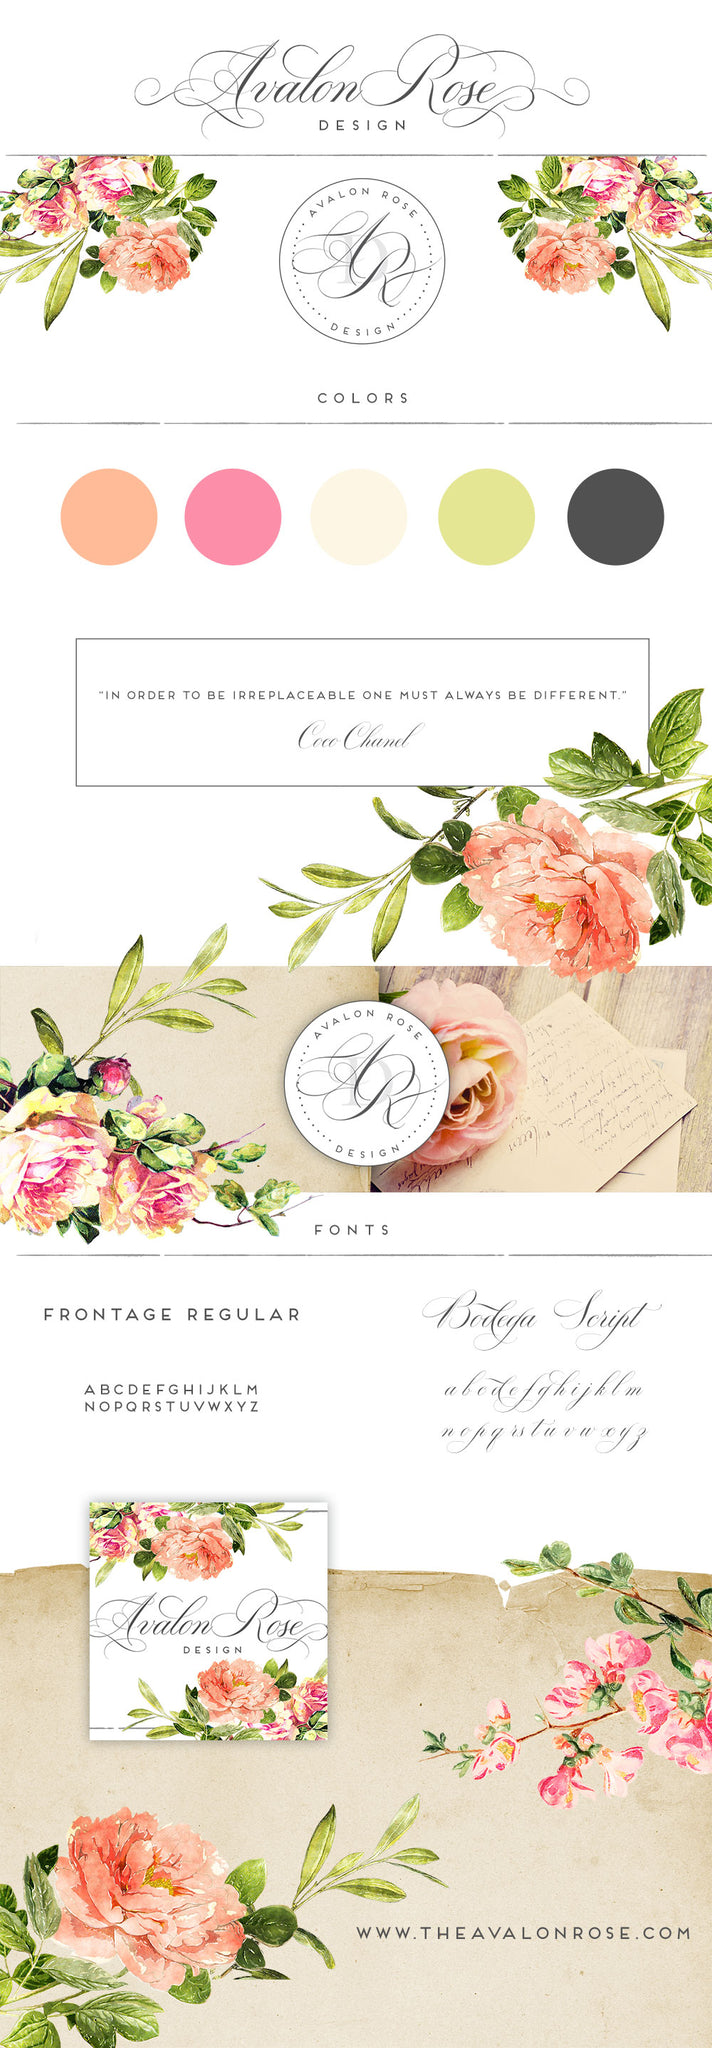 Feminine Branding - Avalon Rose Design